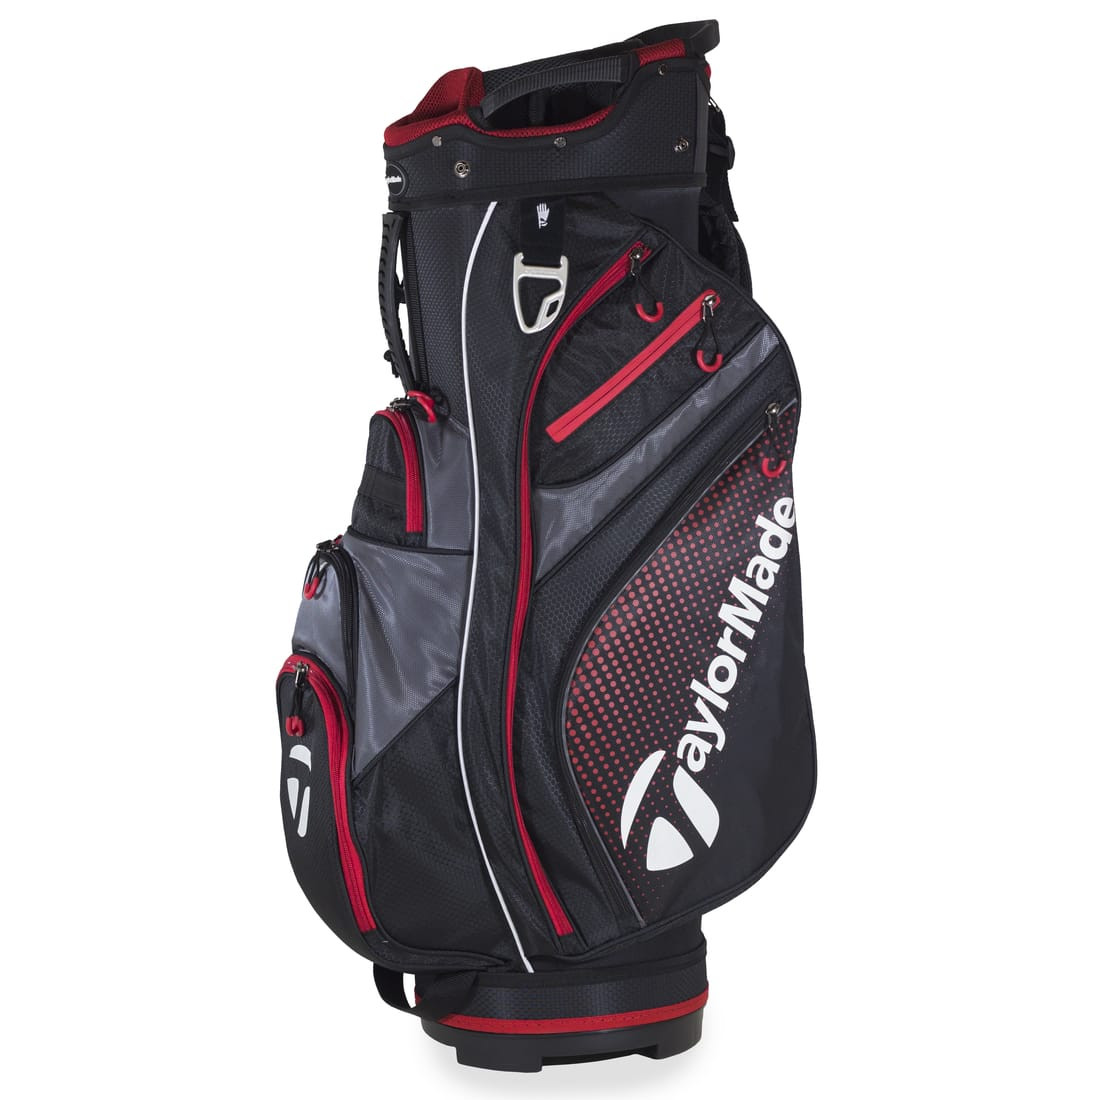 Taylormade Travel Bag For Sale